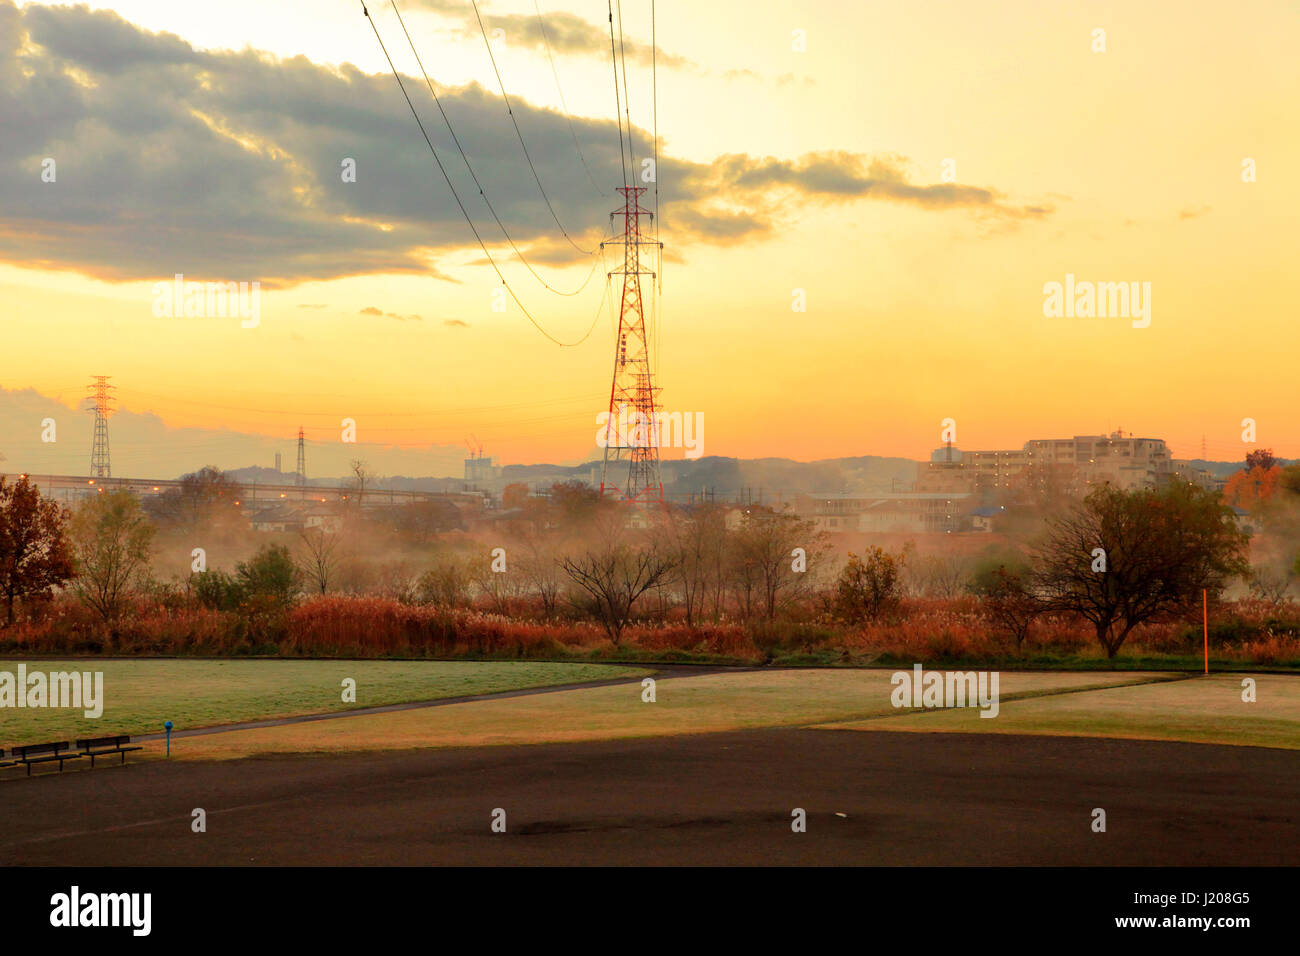 Stock photo hamburg germany riverside new - Early Morning Scene Of Tamagawa Riverside Area In Tachikawa City Western Tokyo Japan Stock Image